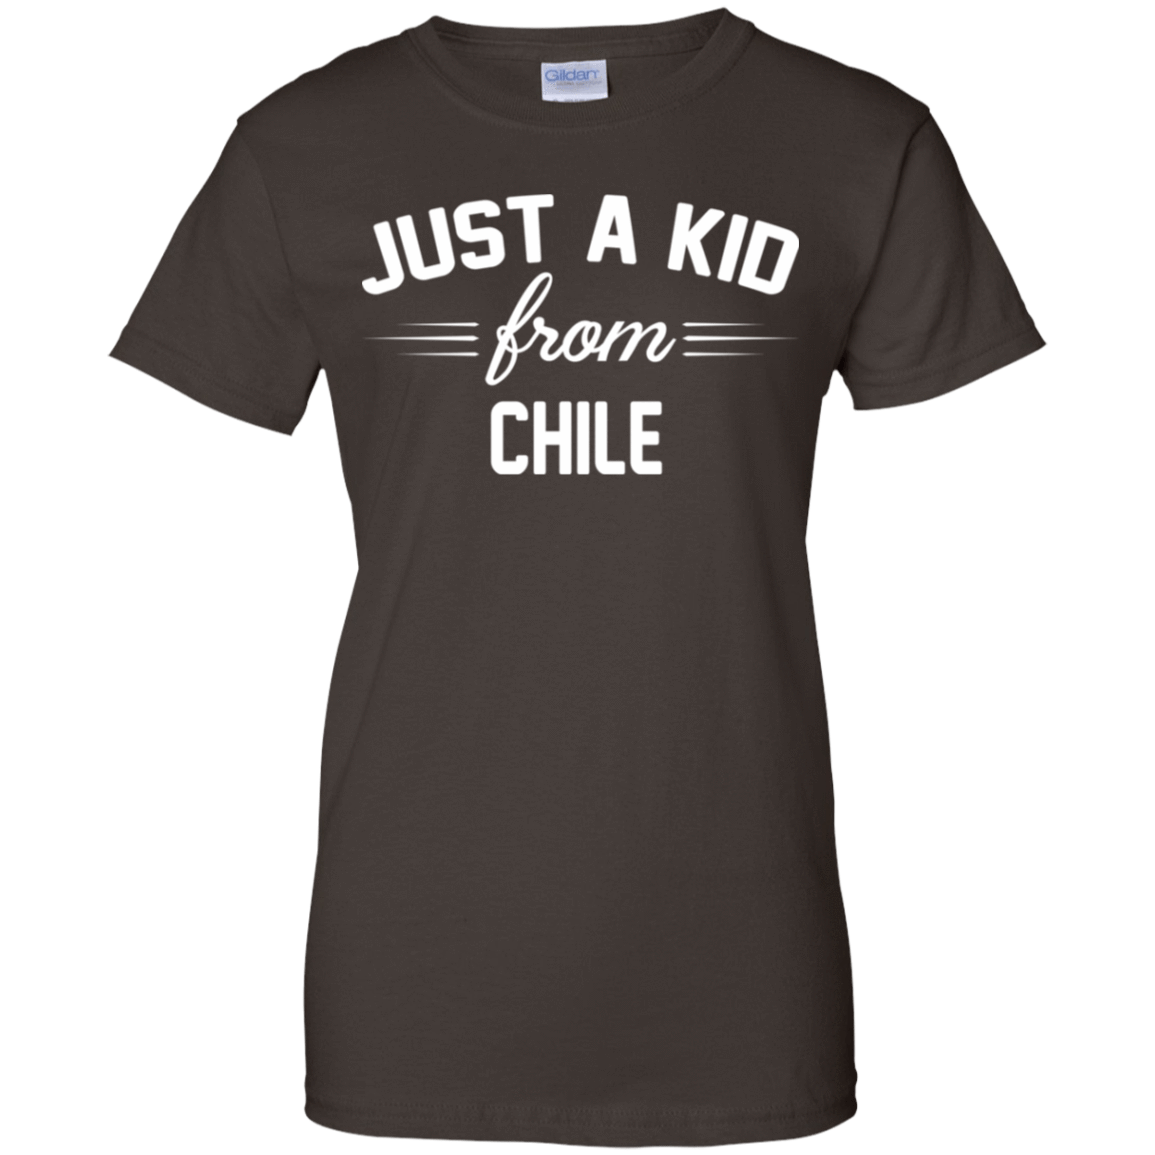 Just a Kid Store | Chile T-Shirts, Hoodie, Tank 939-9251-72092763-44702 - Tee Ript